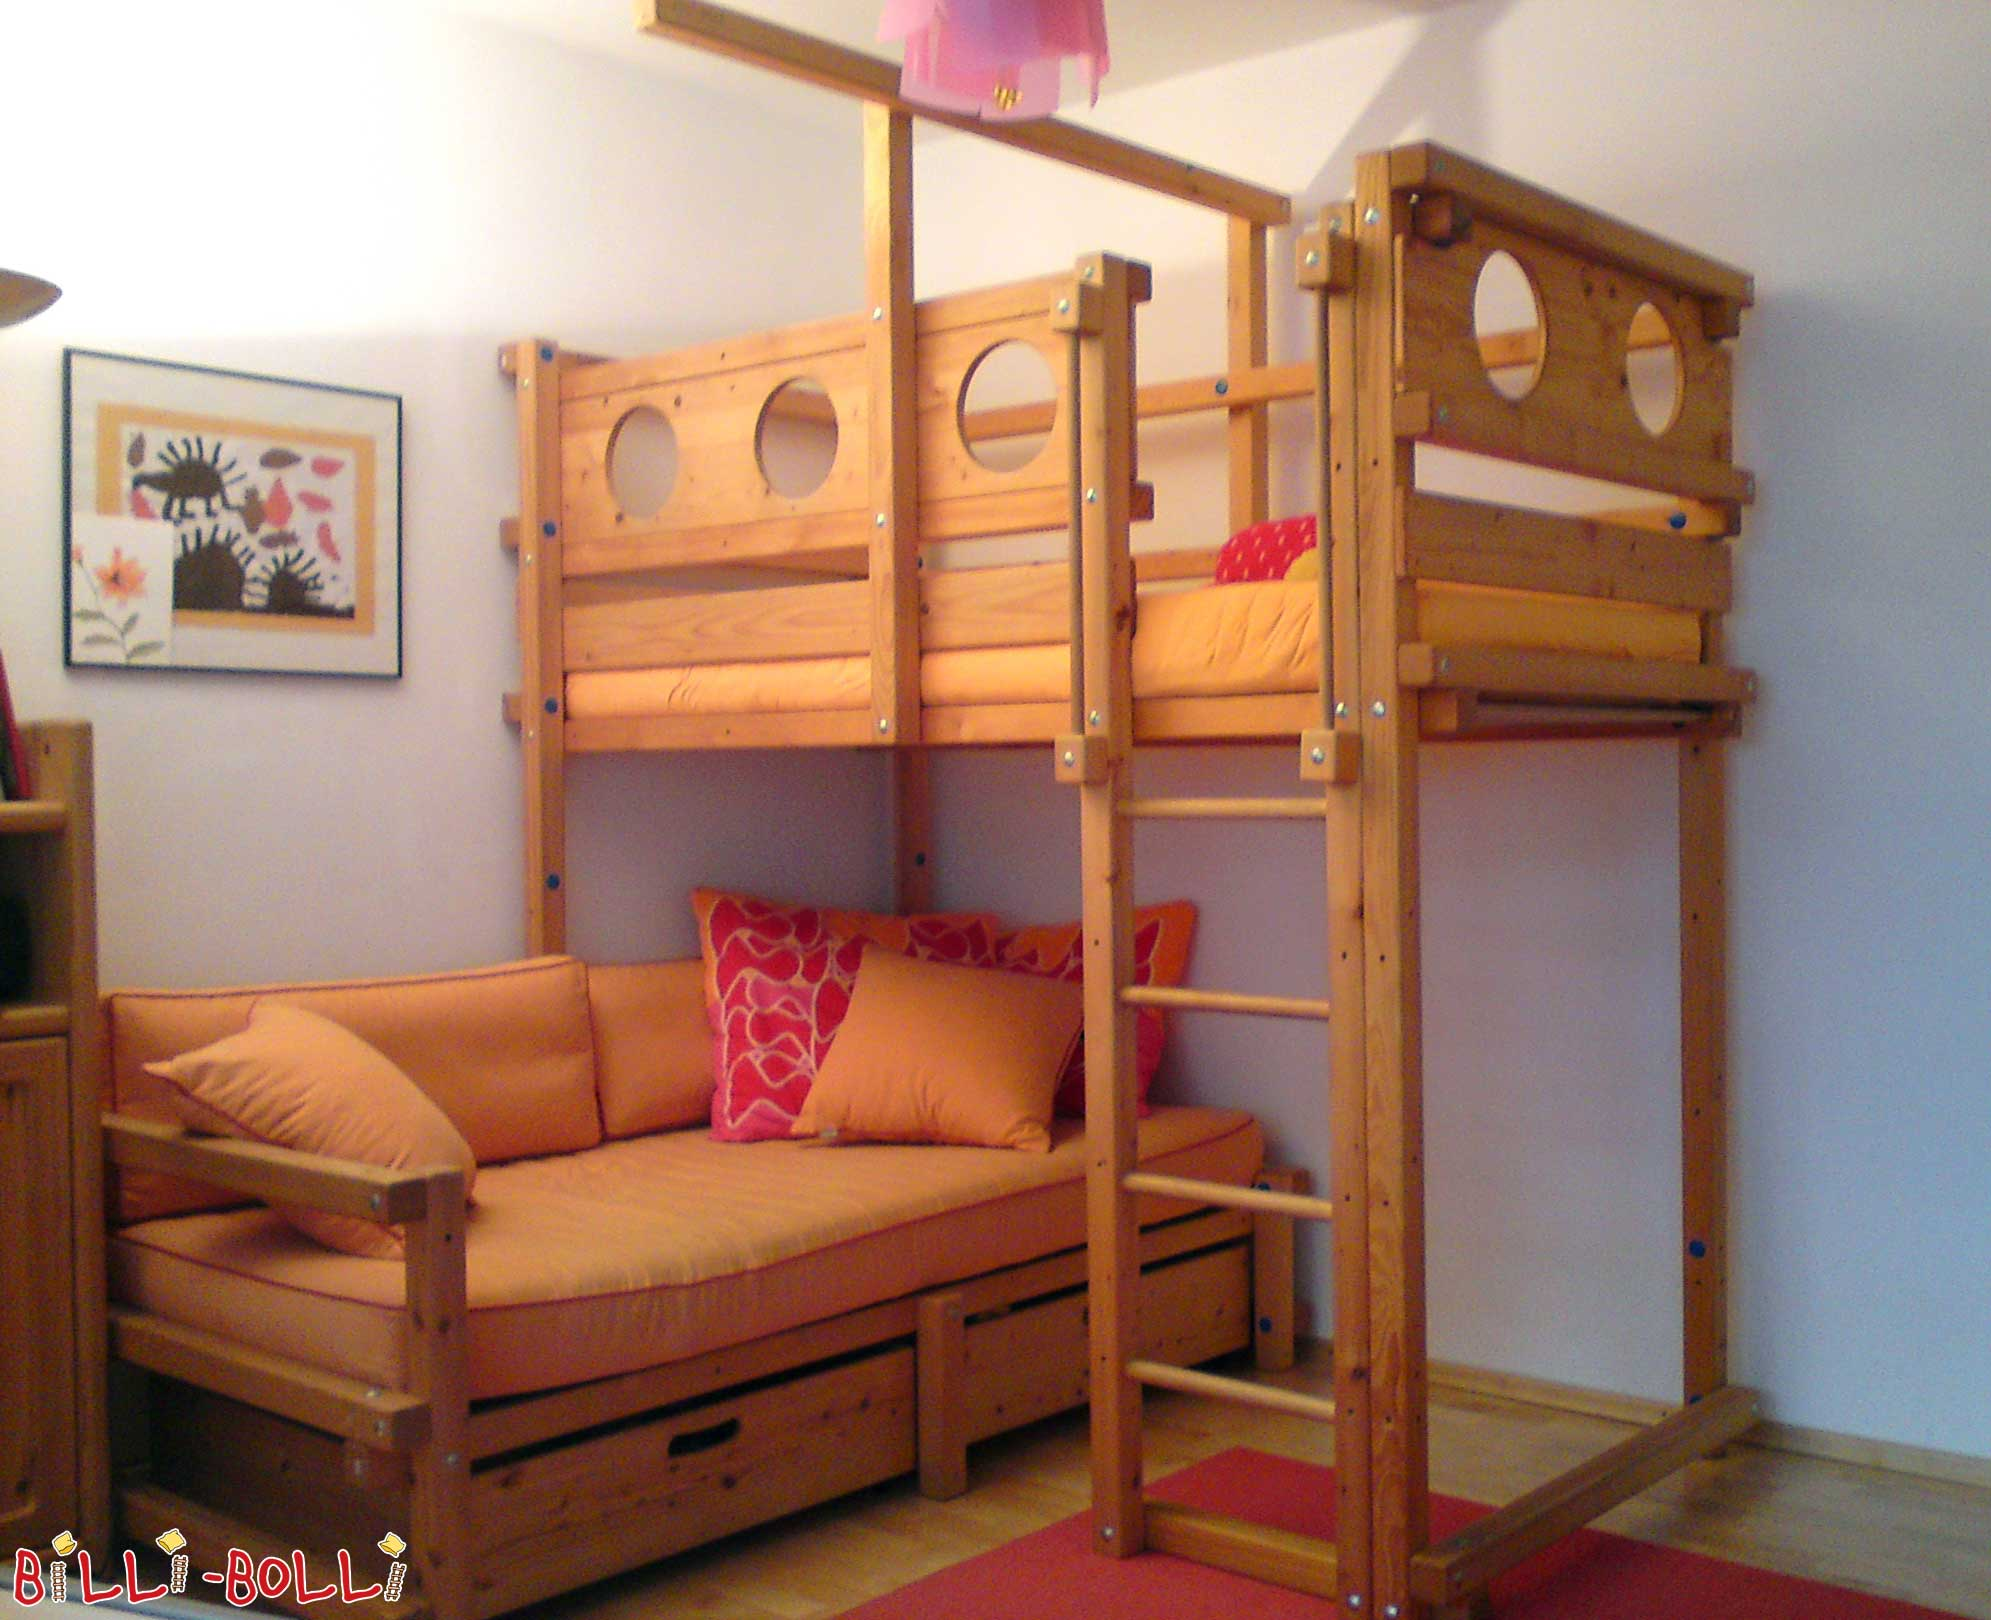 Corner bunk bed billi bolli kids furniture Loft bed plans